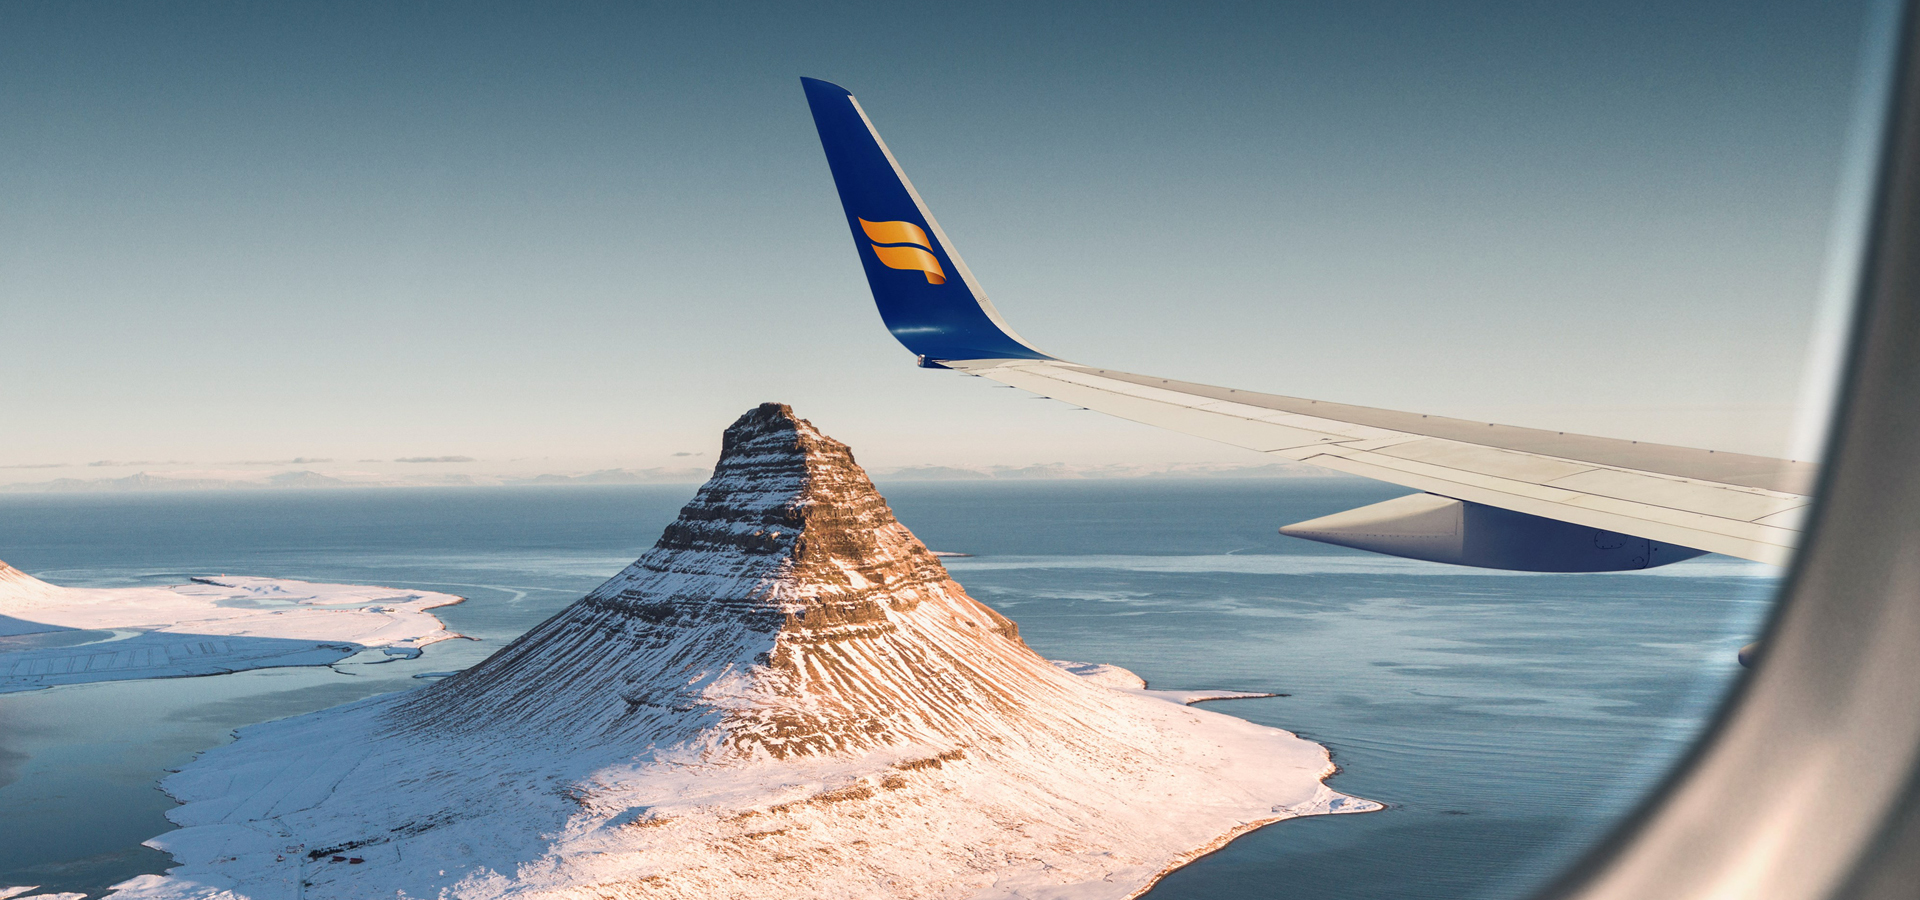 PABLO WINS ICELANDAIR GLOBAL ACCOUNT